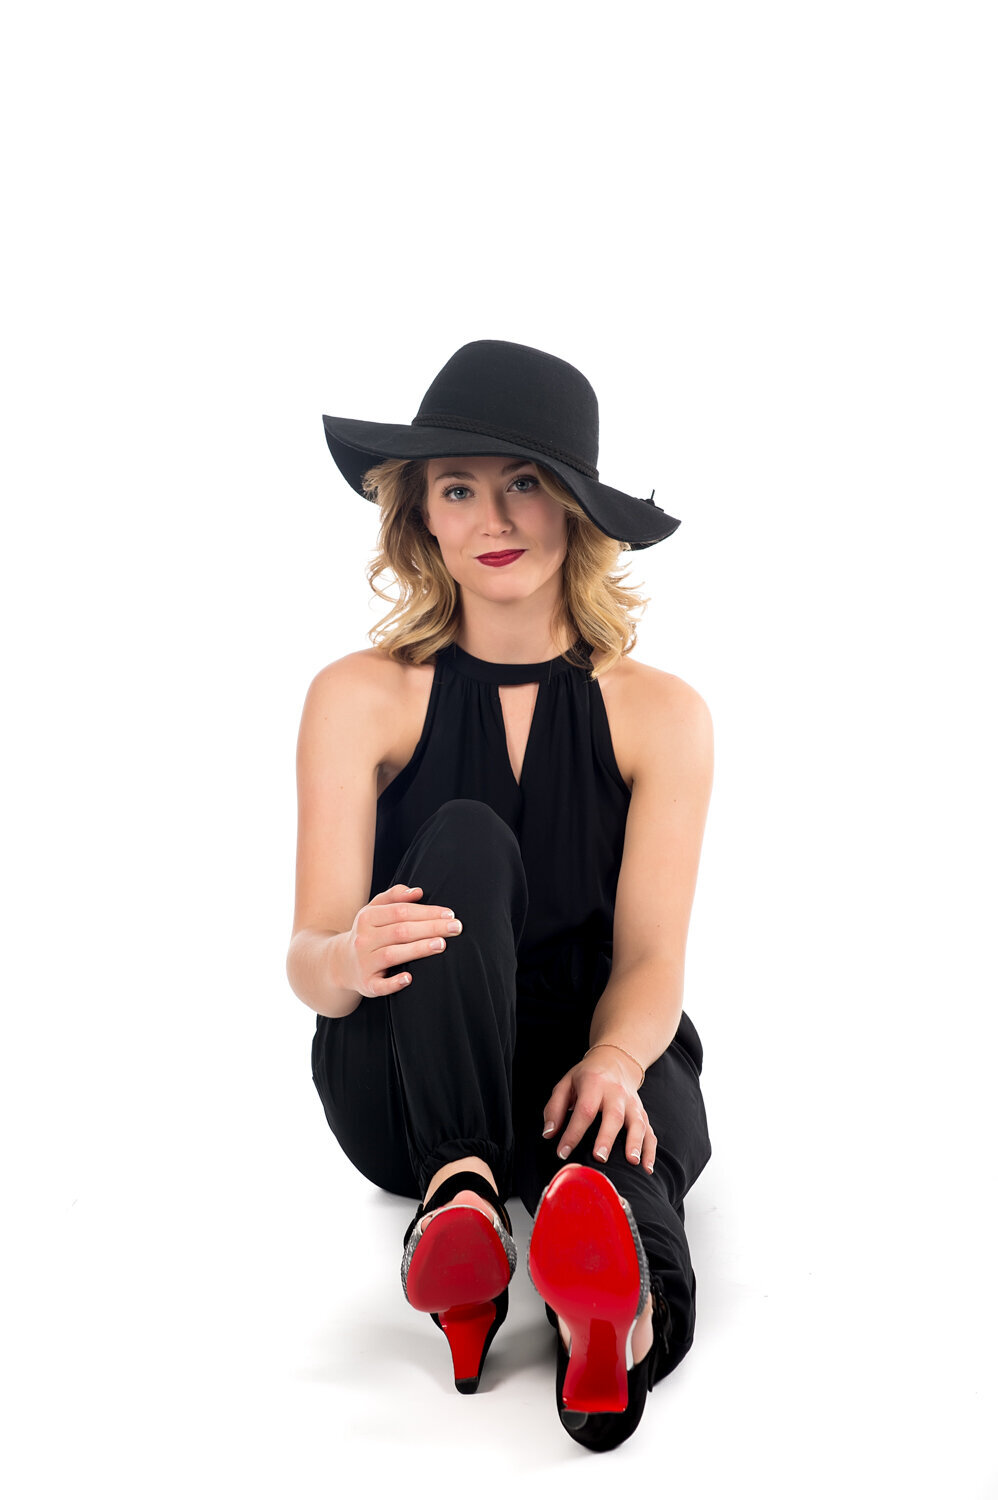 white background senior girl  hat red shoes